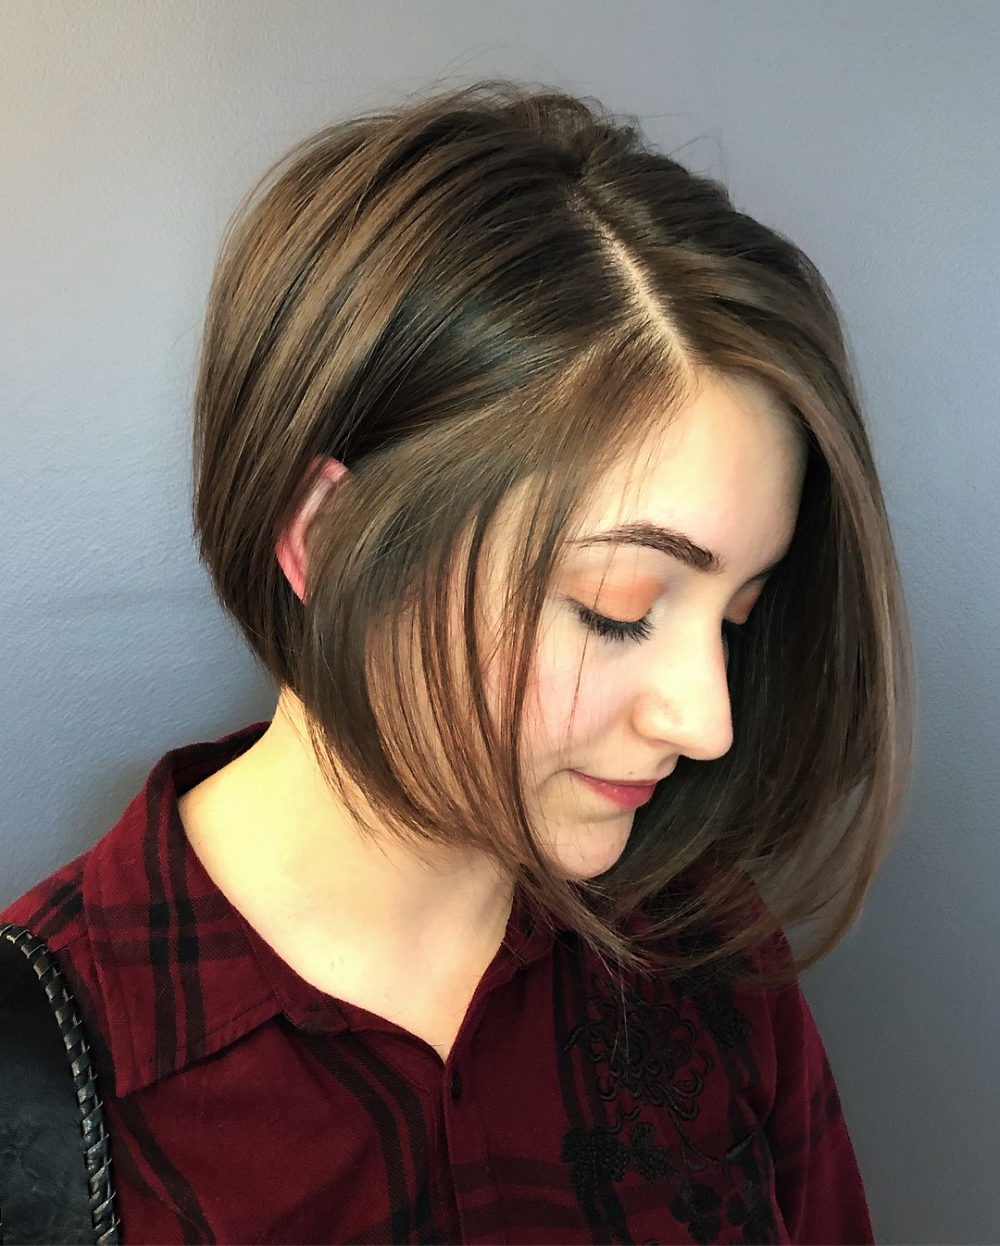 33 Flattering Short Hairstyles For Round Faces In 2018 Throughout Short Haircuts For Round Faces Black Hair (View 18 of 25)